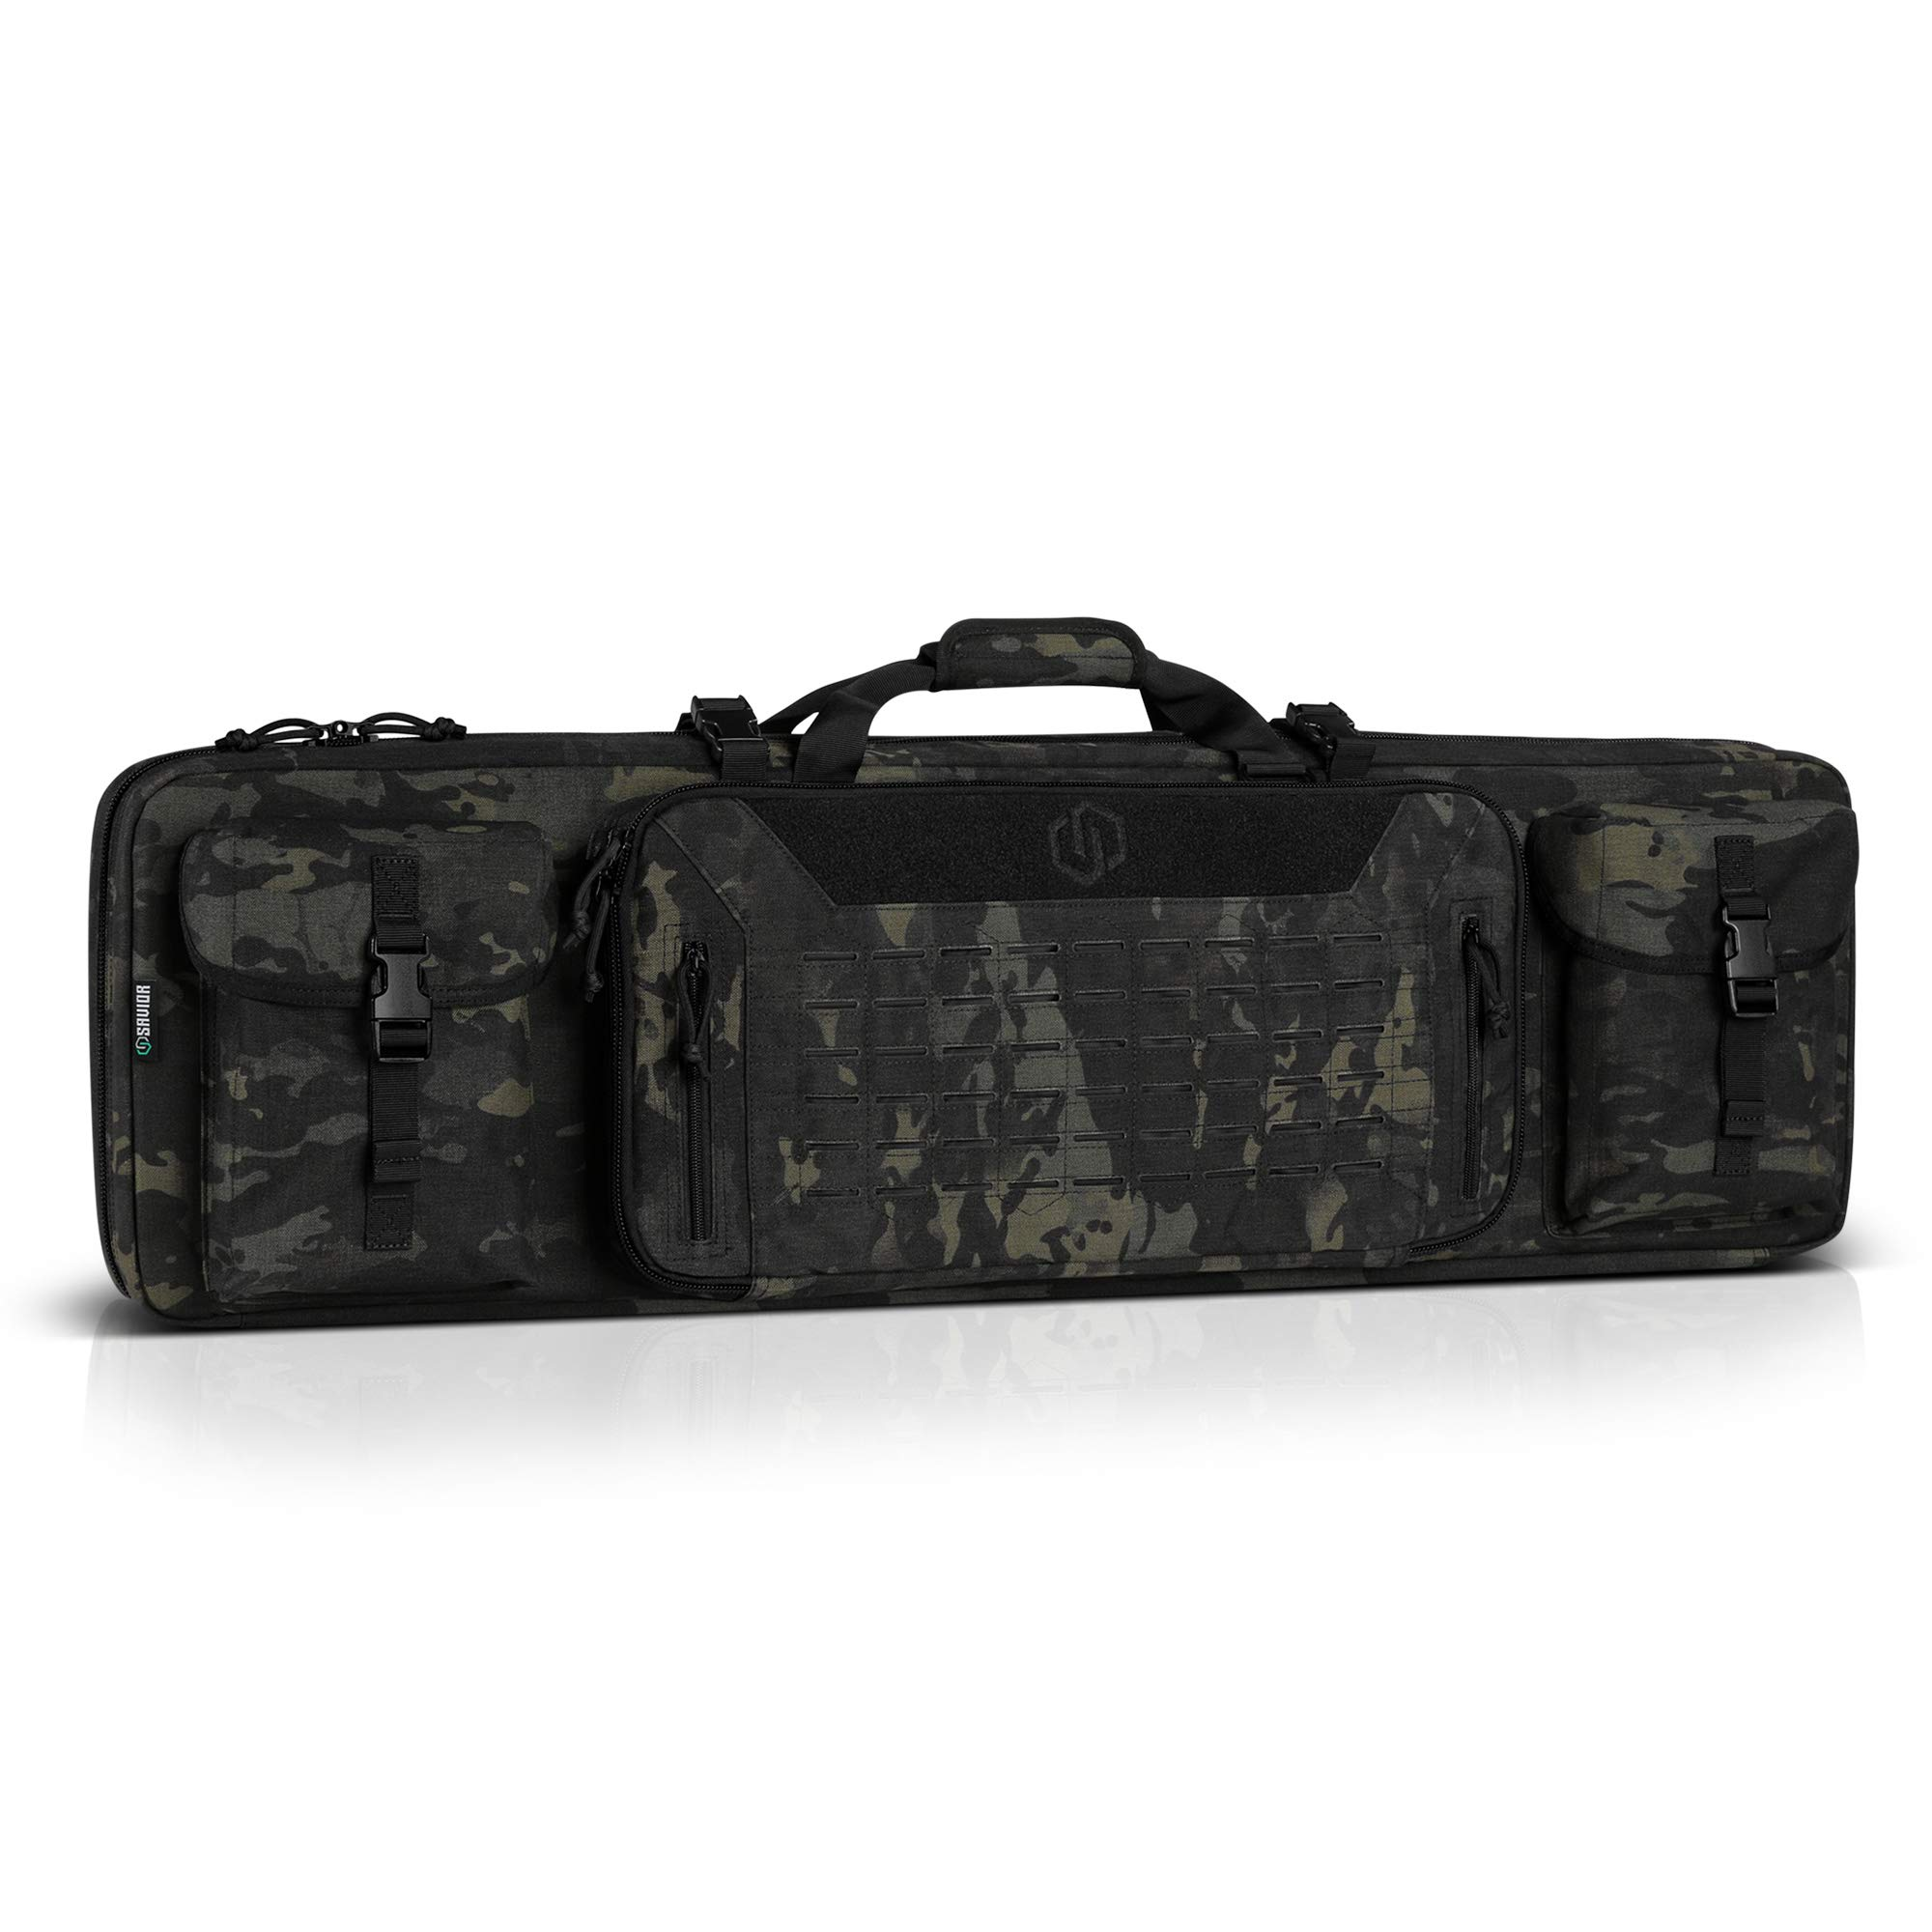 Savior Equipment 42'' Urban Warfare Multicam Black Tactical Double Carbine Long Rifle Bag Firearm Gun Case w/Removable Backpack Strap - 1000D Cordura Nylon Fabric, UTX Buckles, YKK Zippers by Savior Equipment